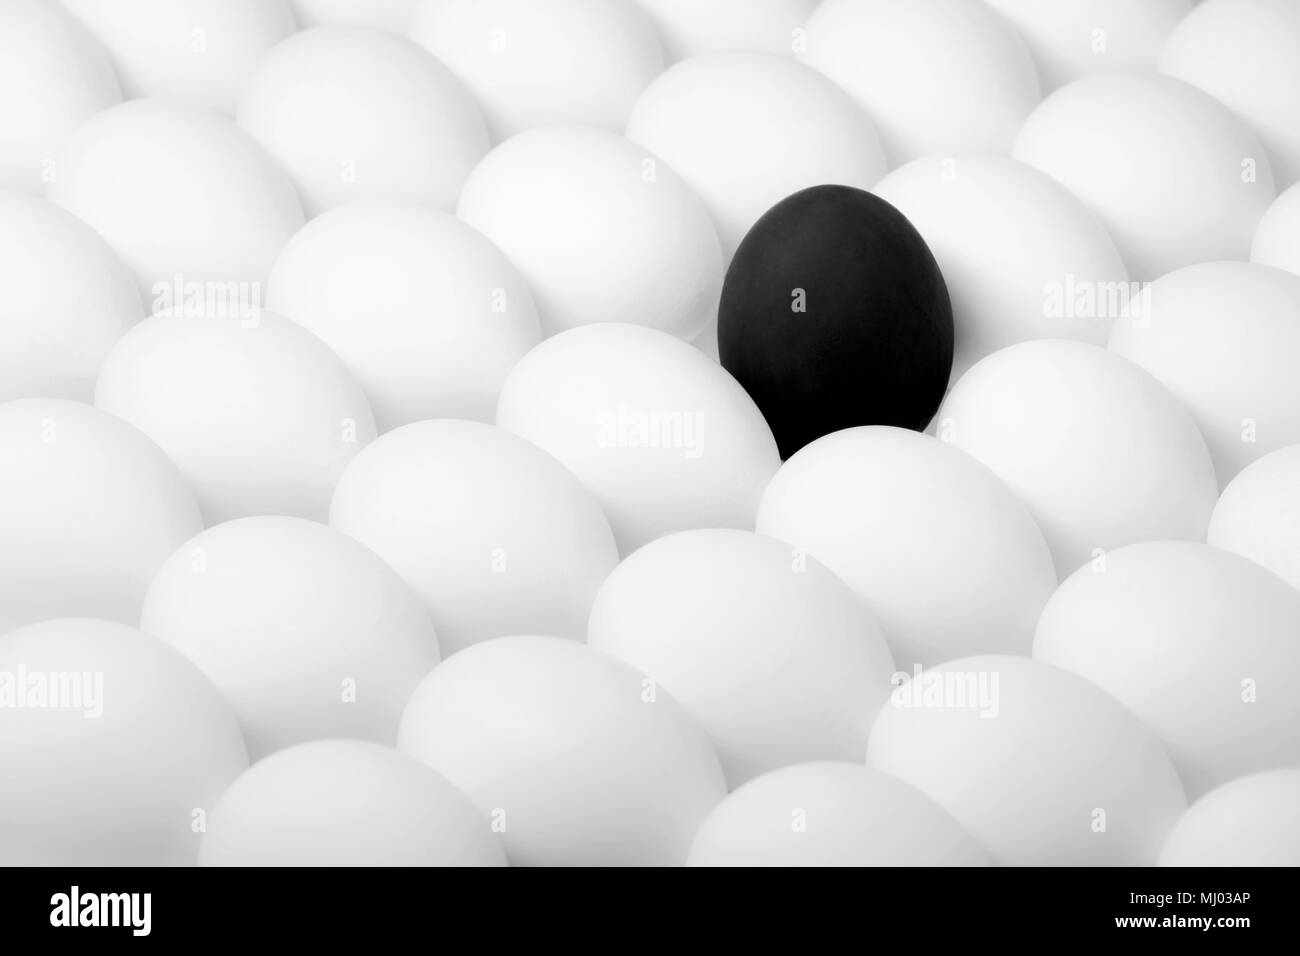 black rebel egg standing out from the crowd of white eggs - Stock Image